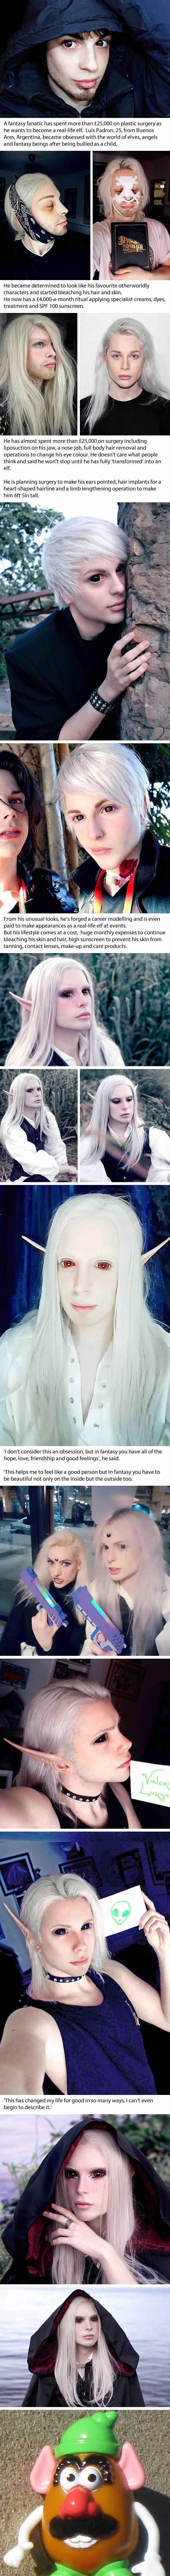 Fantasy Fanatic Splashes £27k On Plastic Surgery To Look Like An Elf